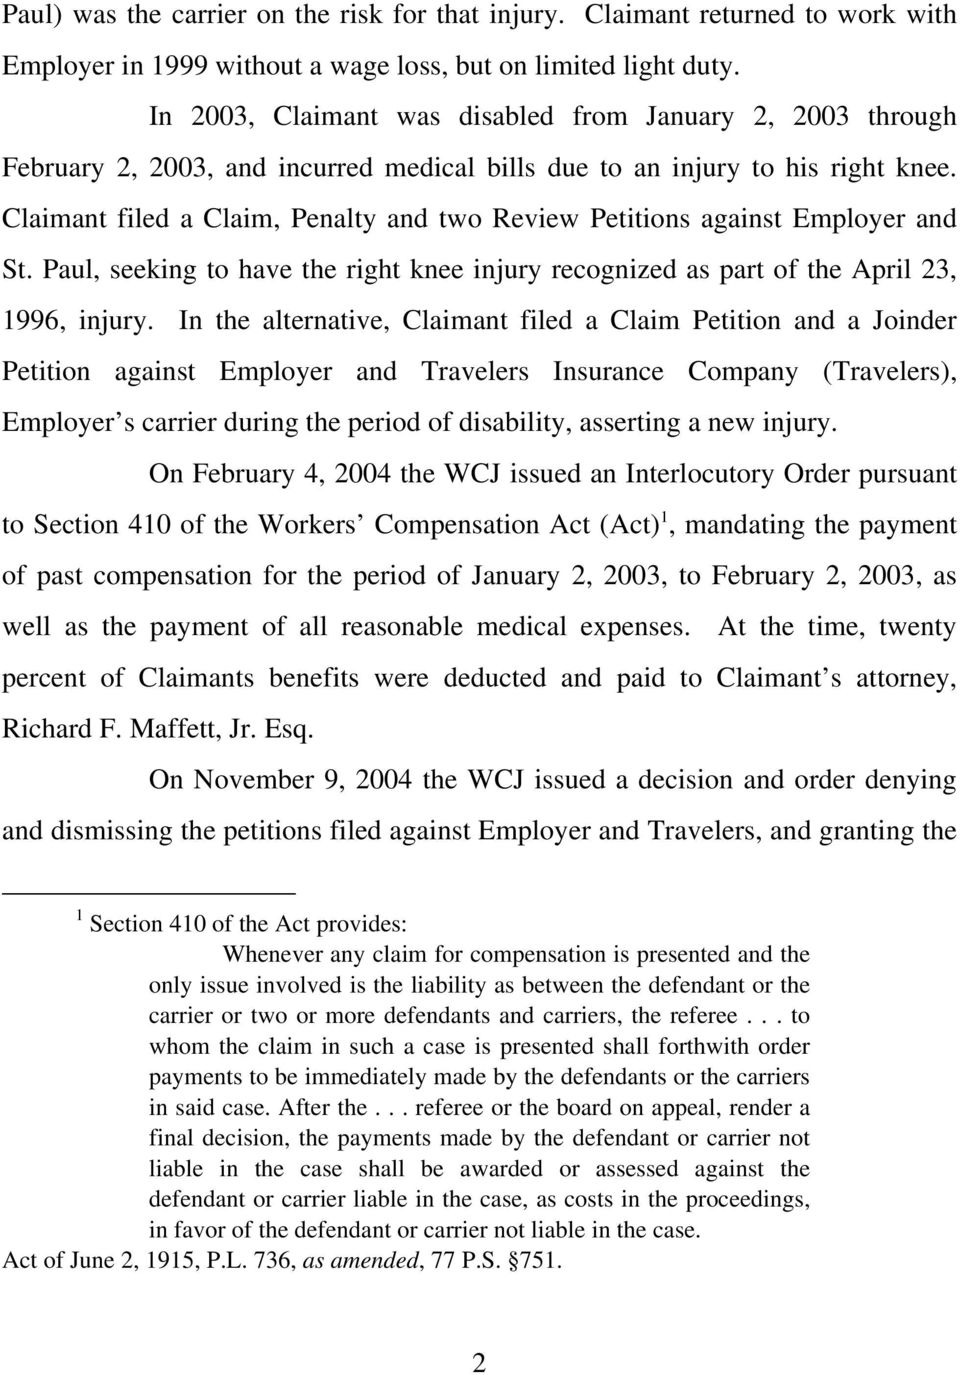 Claimant filed a Claim, Penalty and two Review Petitions against Employer and St. Paul, seeking to have the right knee injury recognized as part of the April 23, 1996, injury.